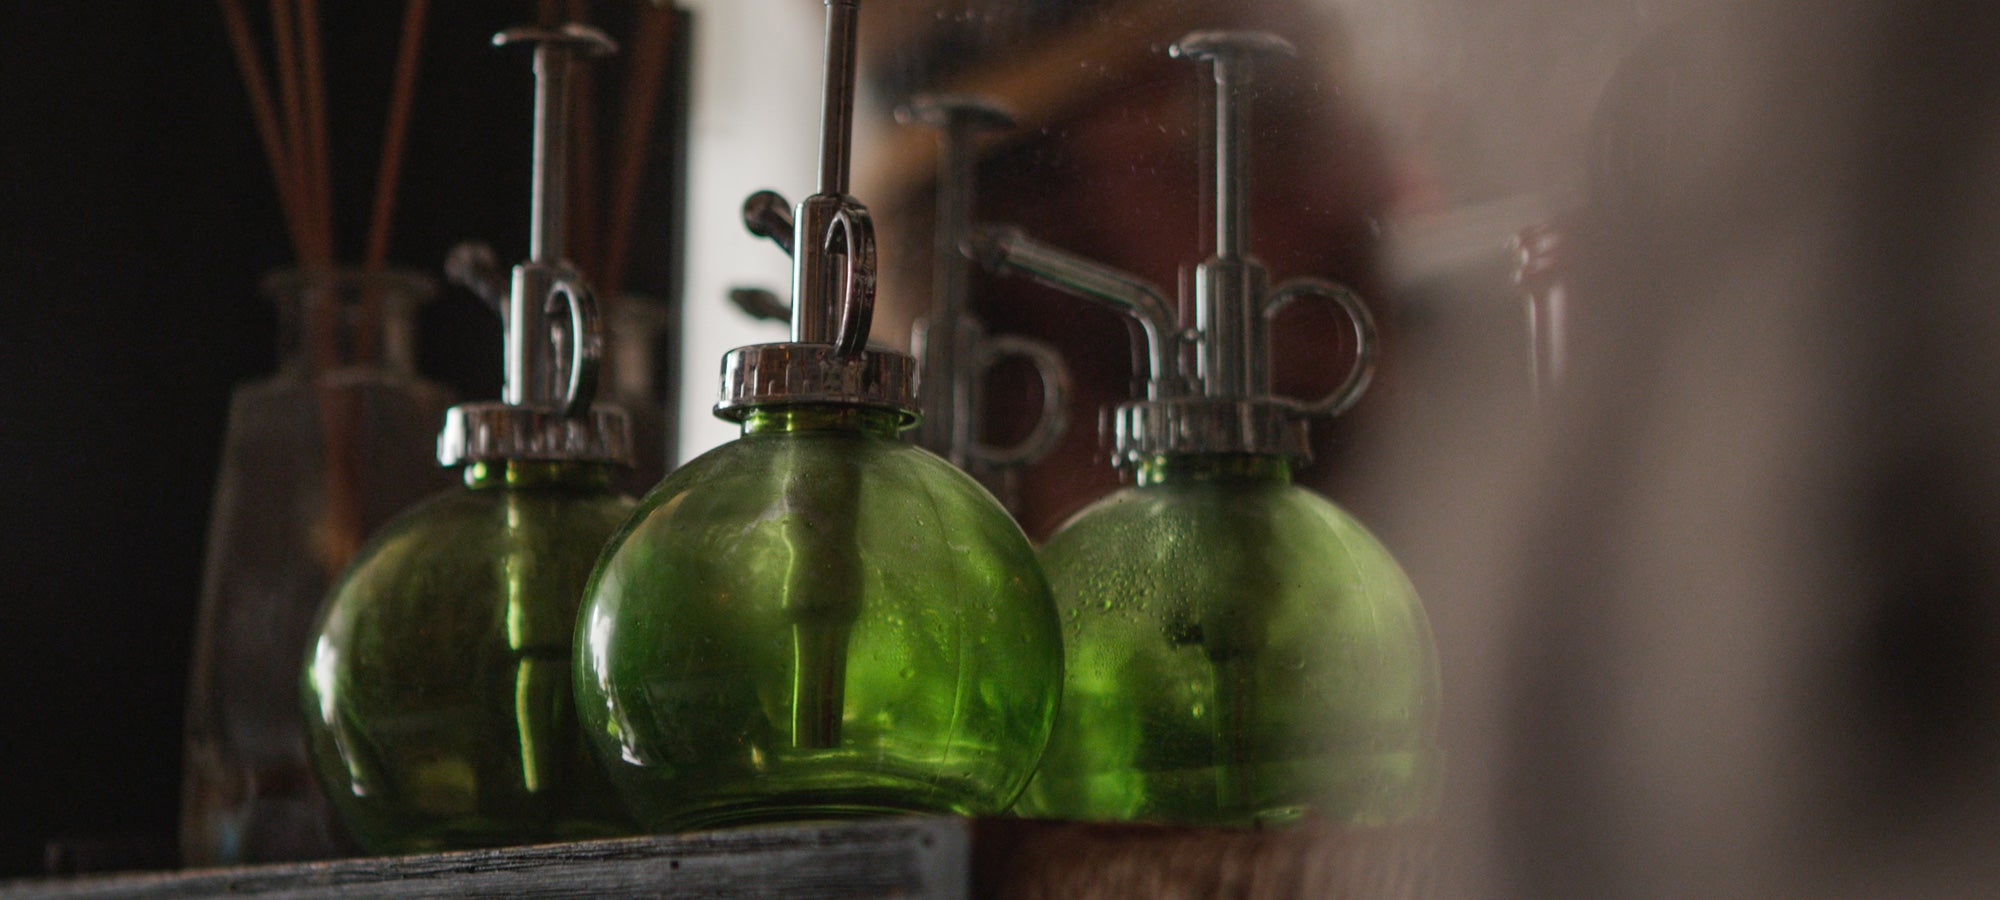 The history of Absinthe